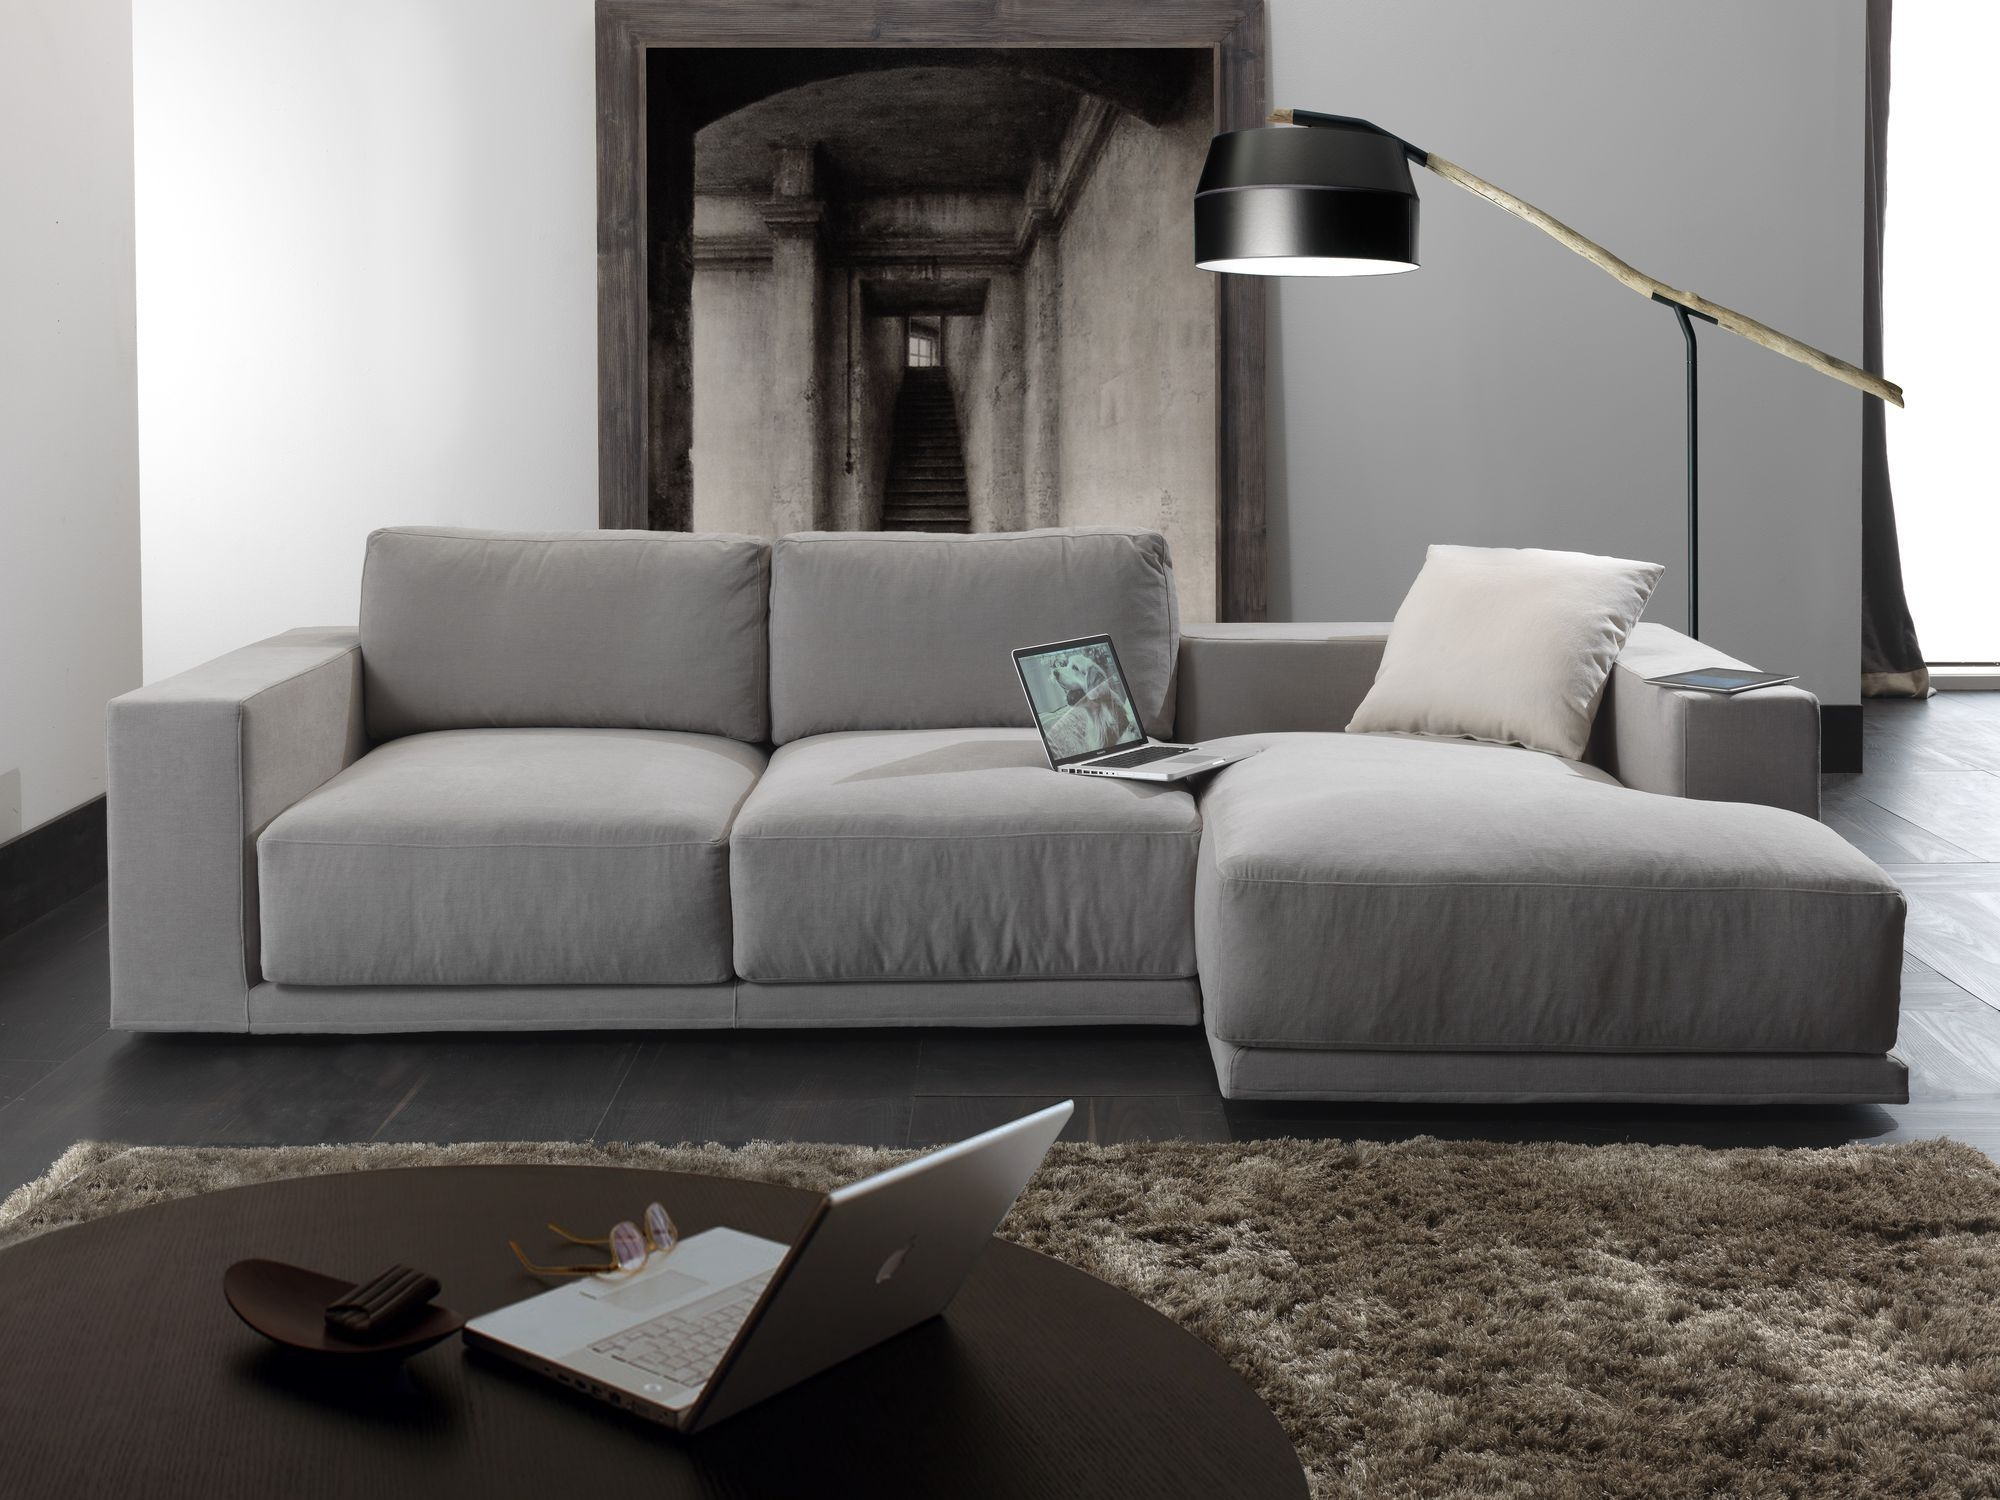 Modular Sofa Contemporary Fabric 3 Seater Relax Square In Contemporary Fabric Sofas (Image 14 of 15)